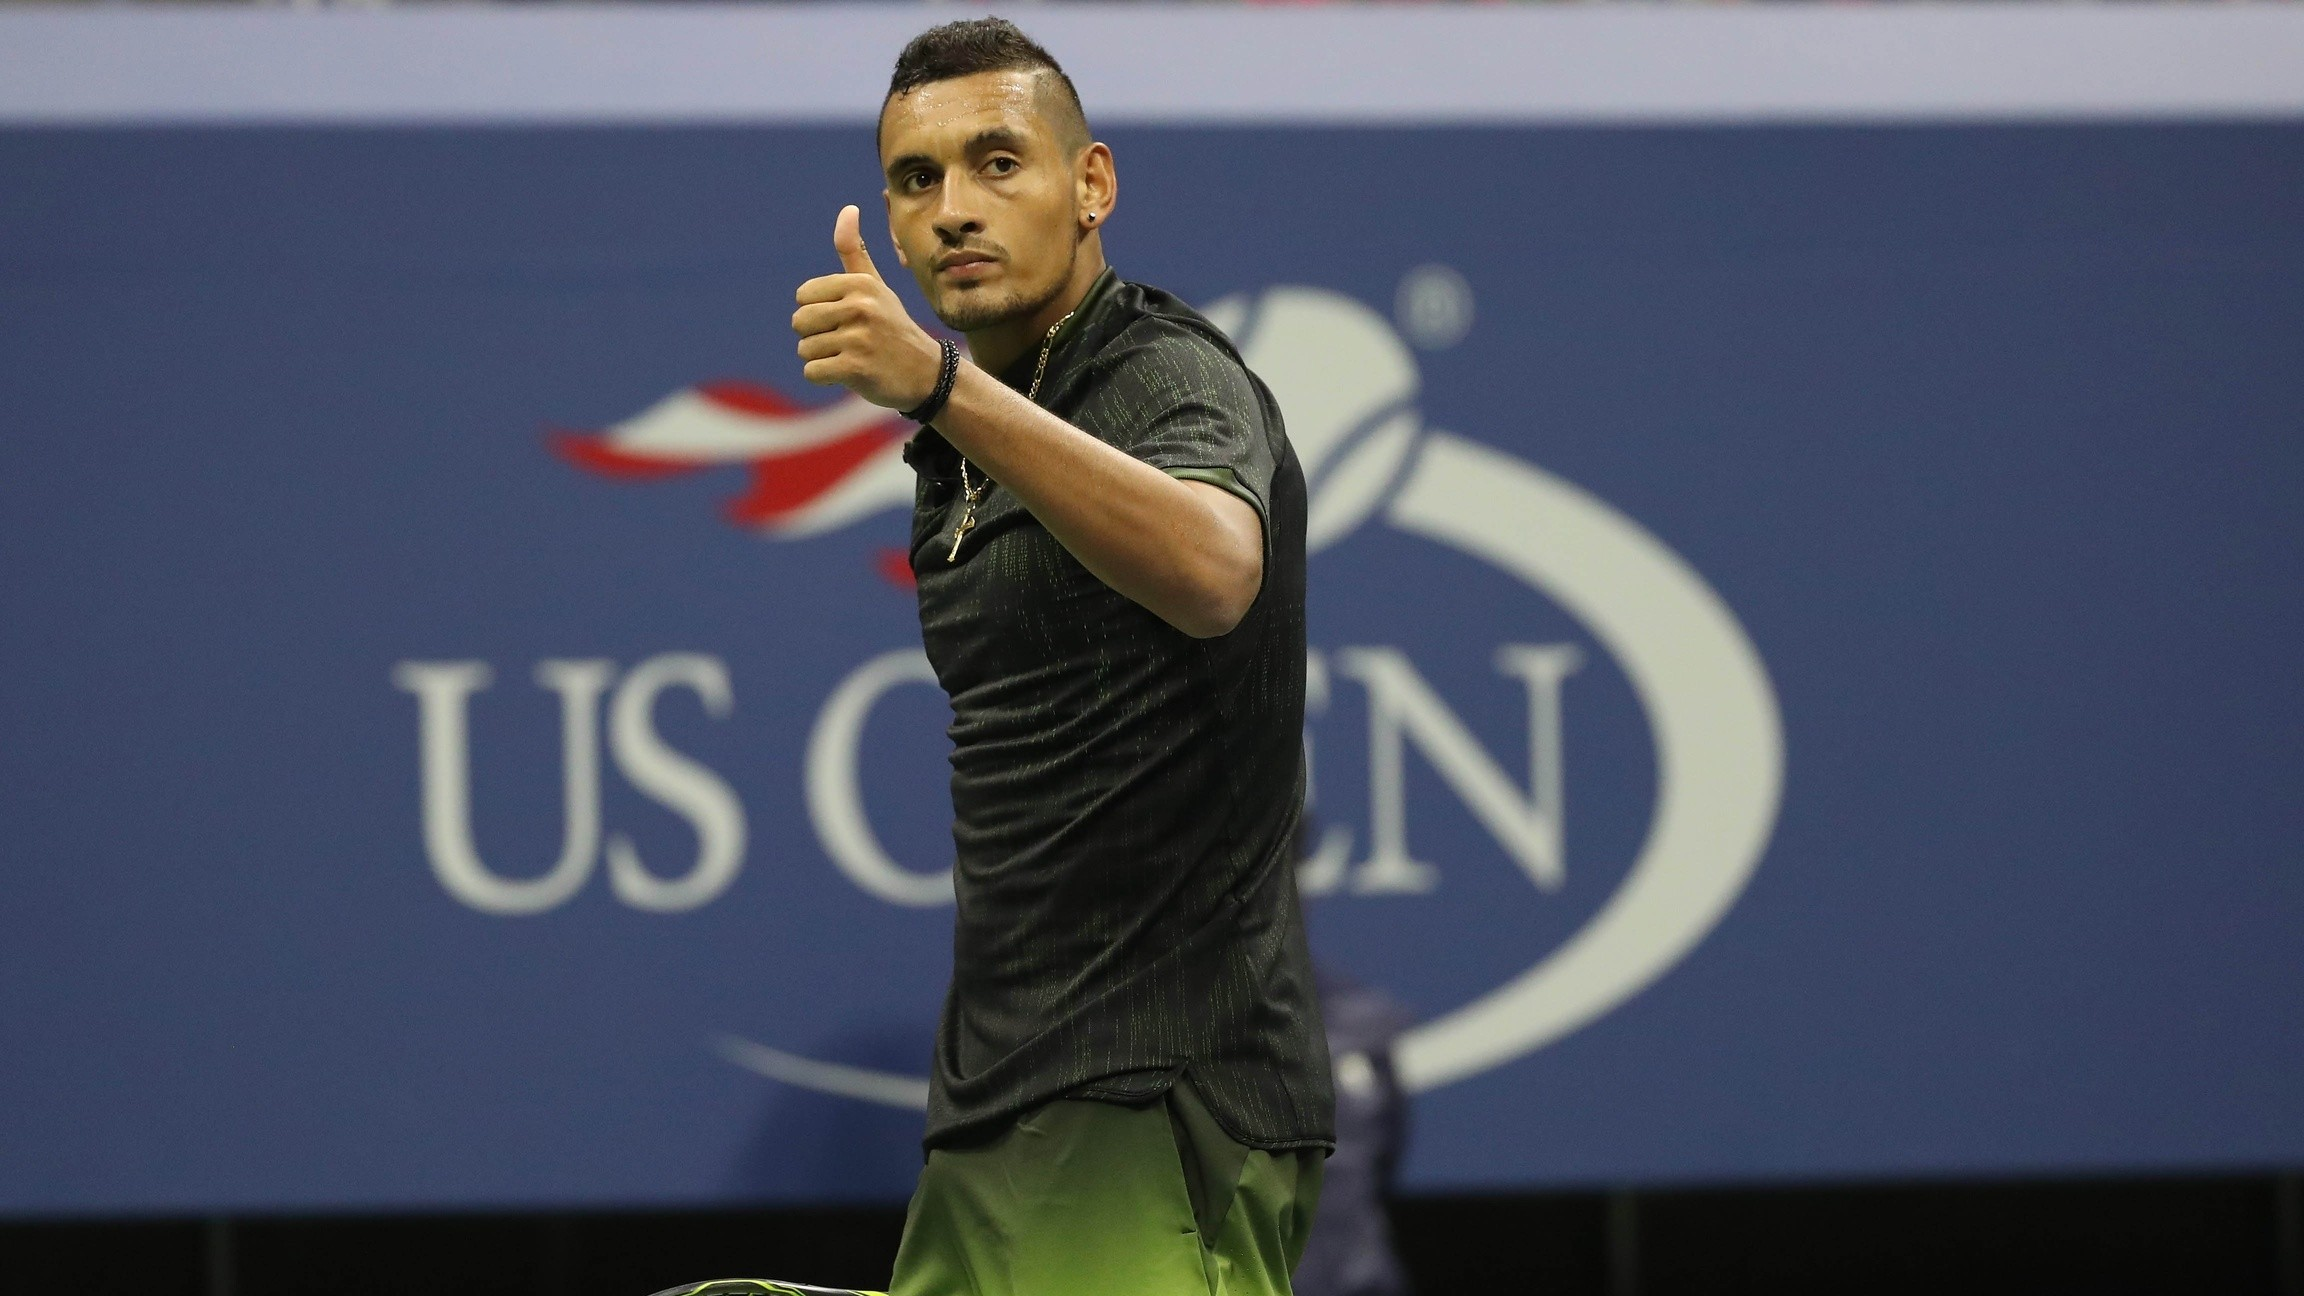 Nick Kyrgios Booed by Fellow Aussies During Meltdown at the Australian Open